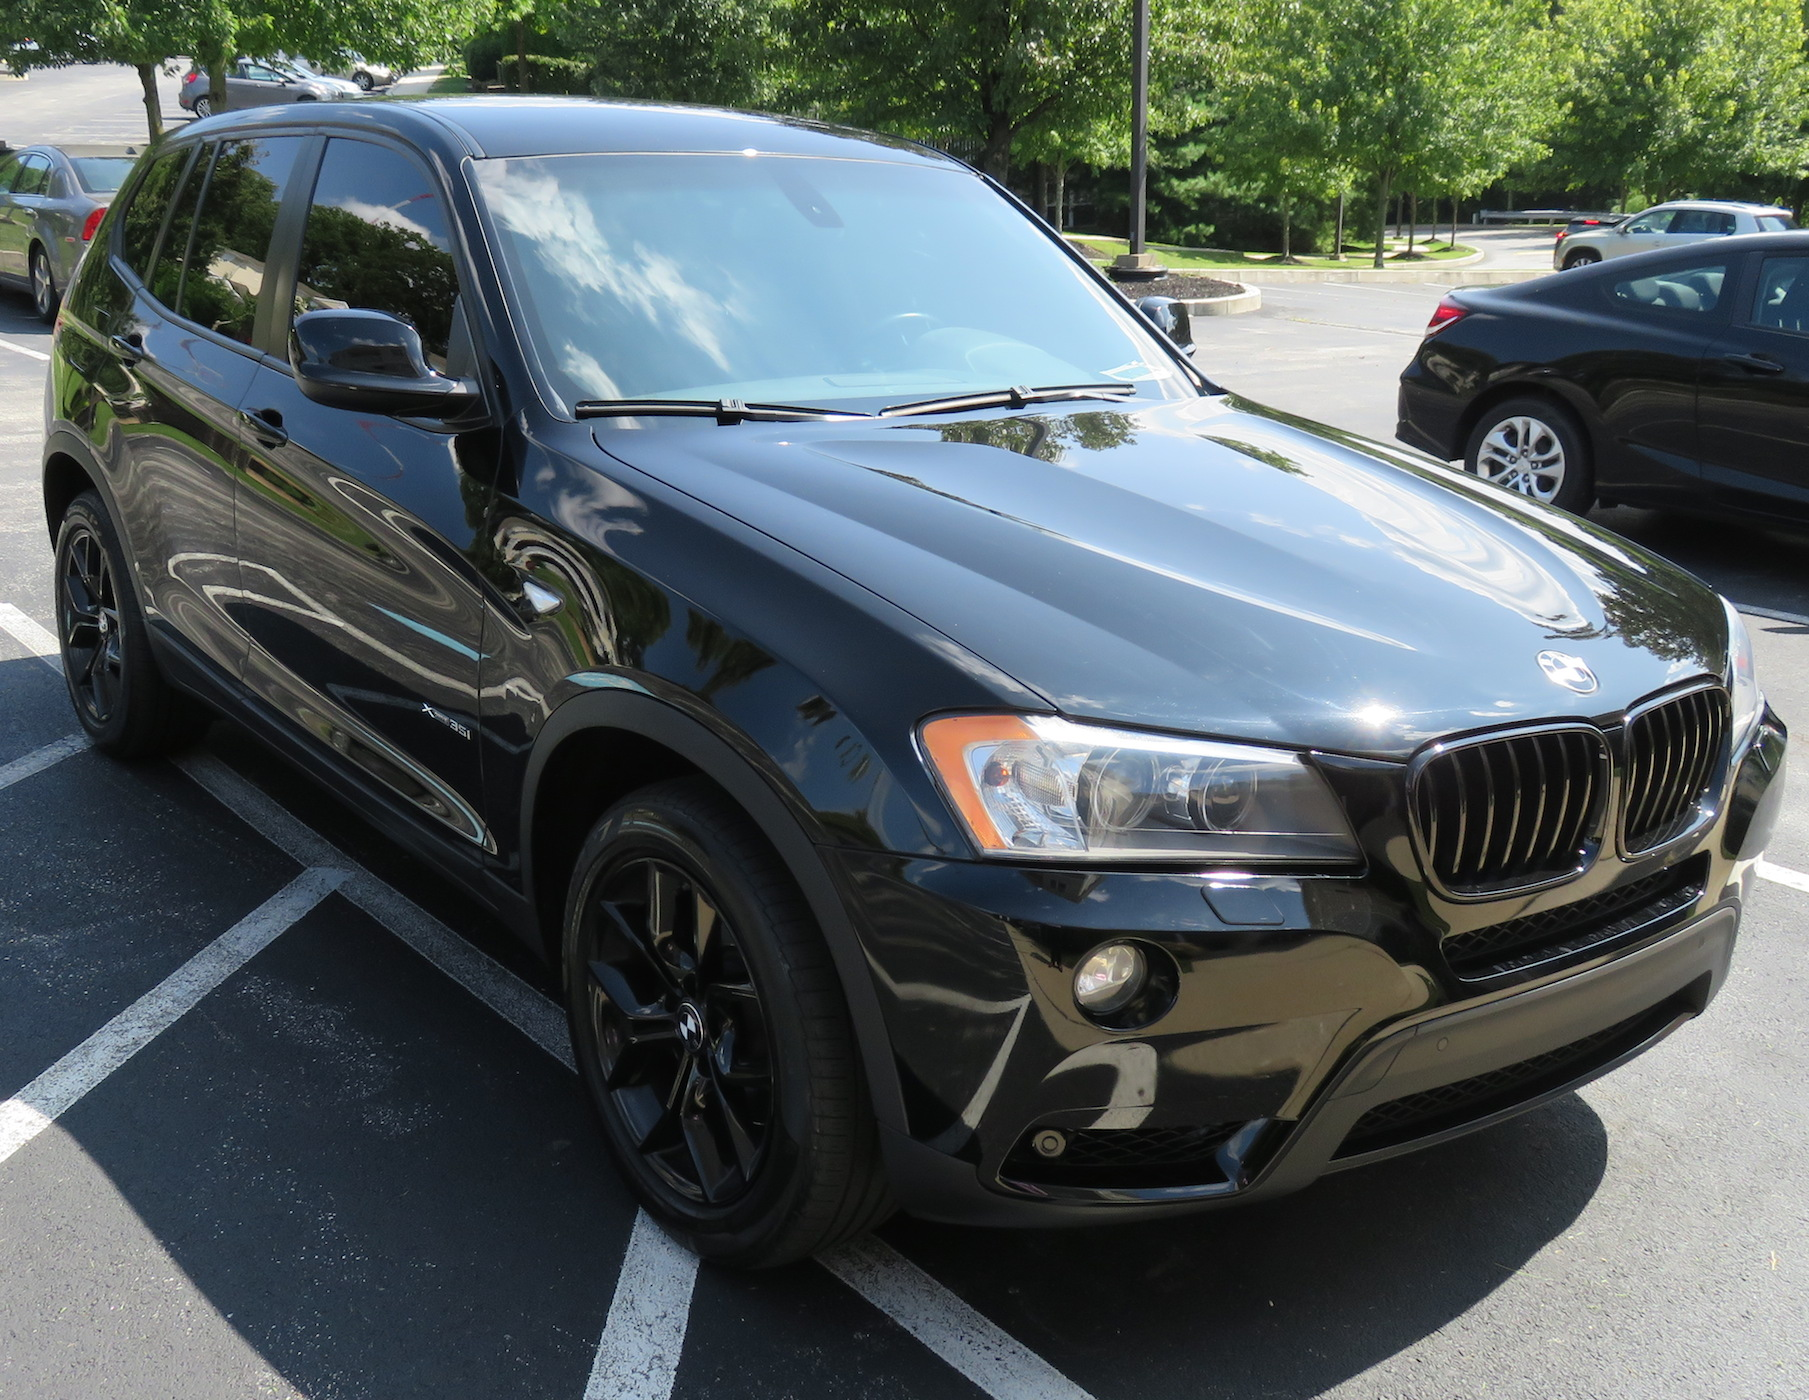 2013 Bmw 328I Windshield Replacement Cost 2011 x3 front windshield replacement - xbimmers | bmw x3 forum